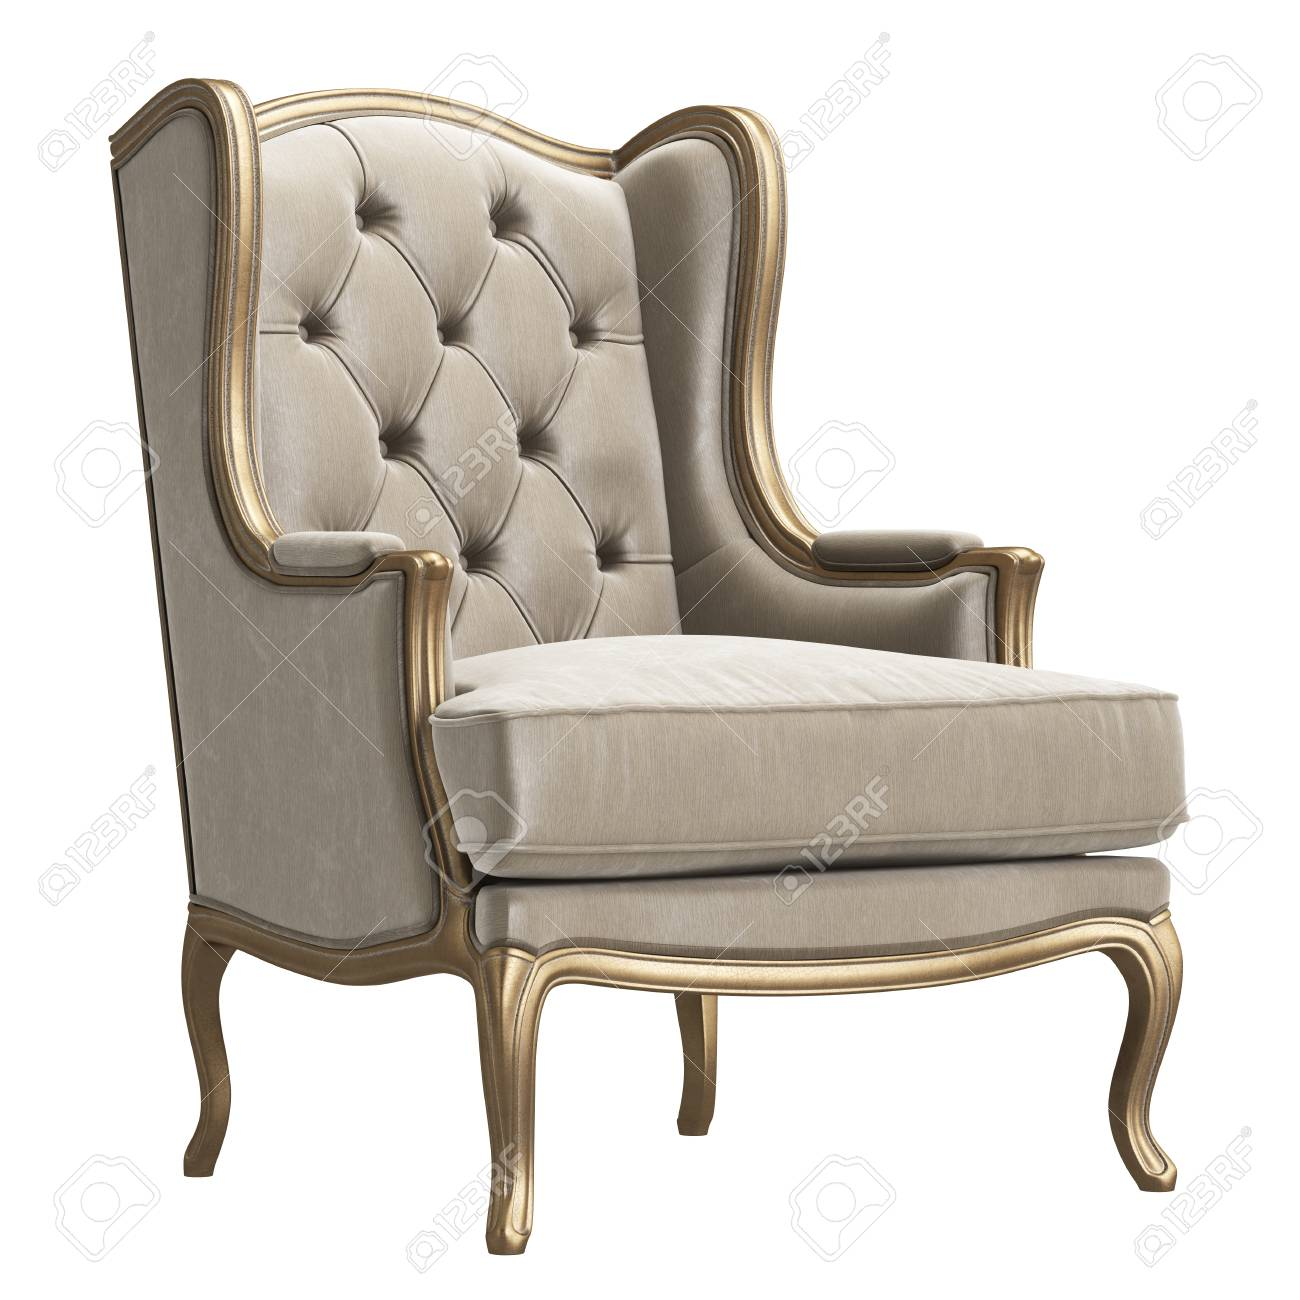 Classic Armchair In Ivory Color Velvet And Gold Isolated On White  Background.Digital Illustration.